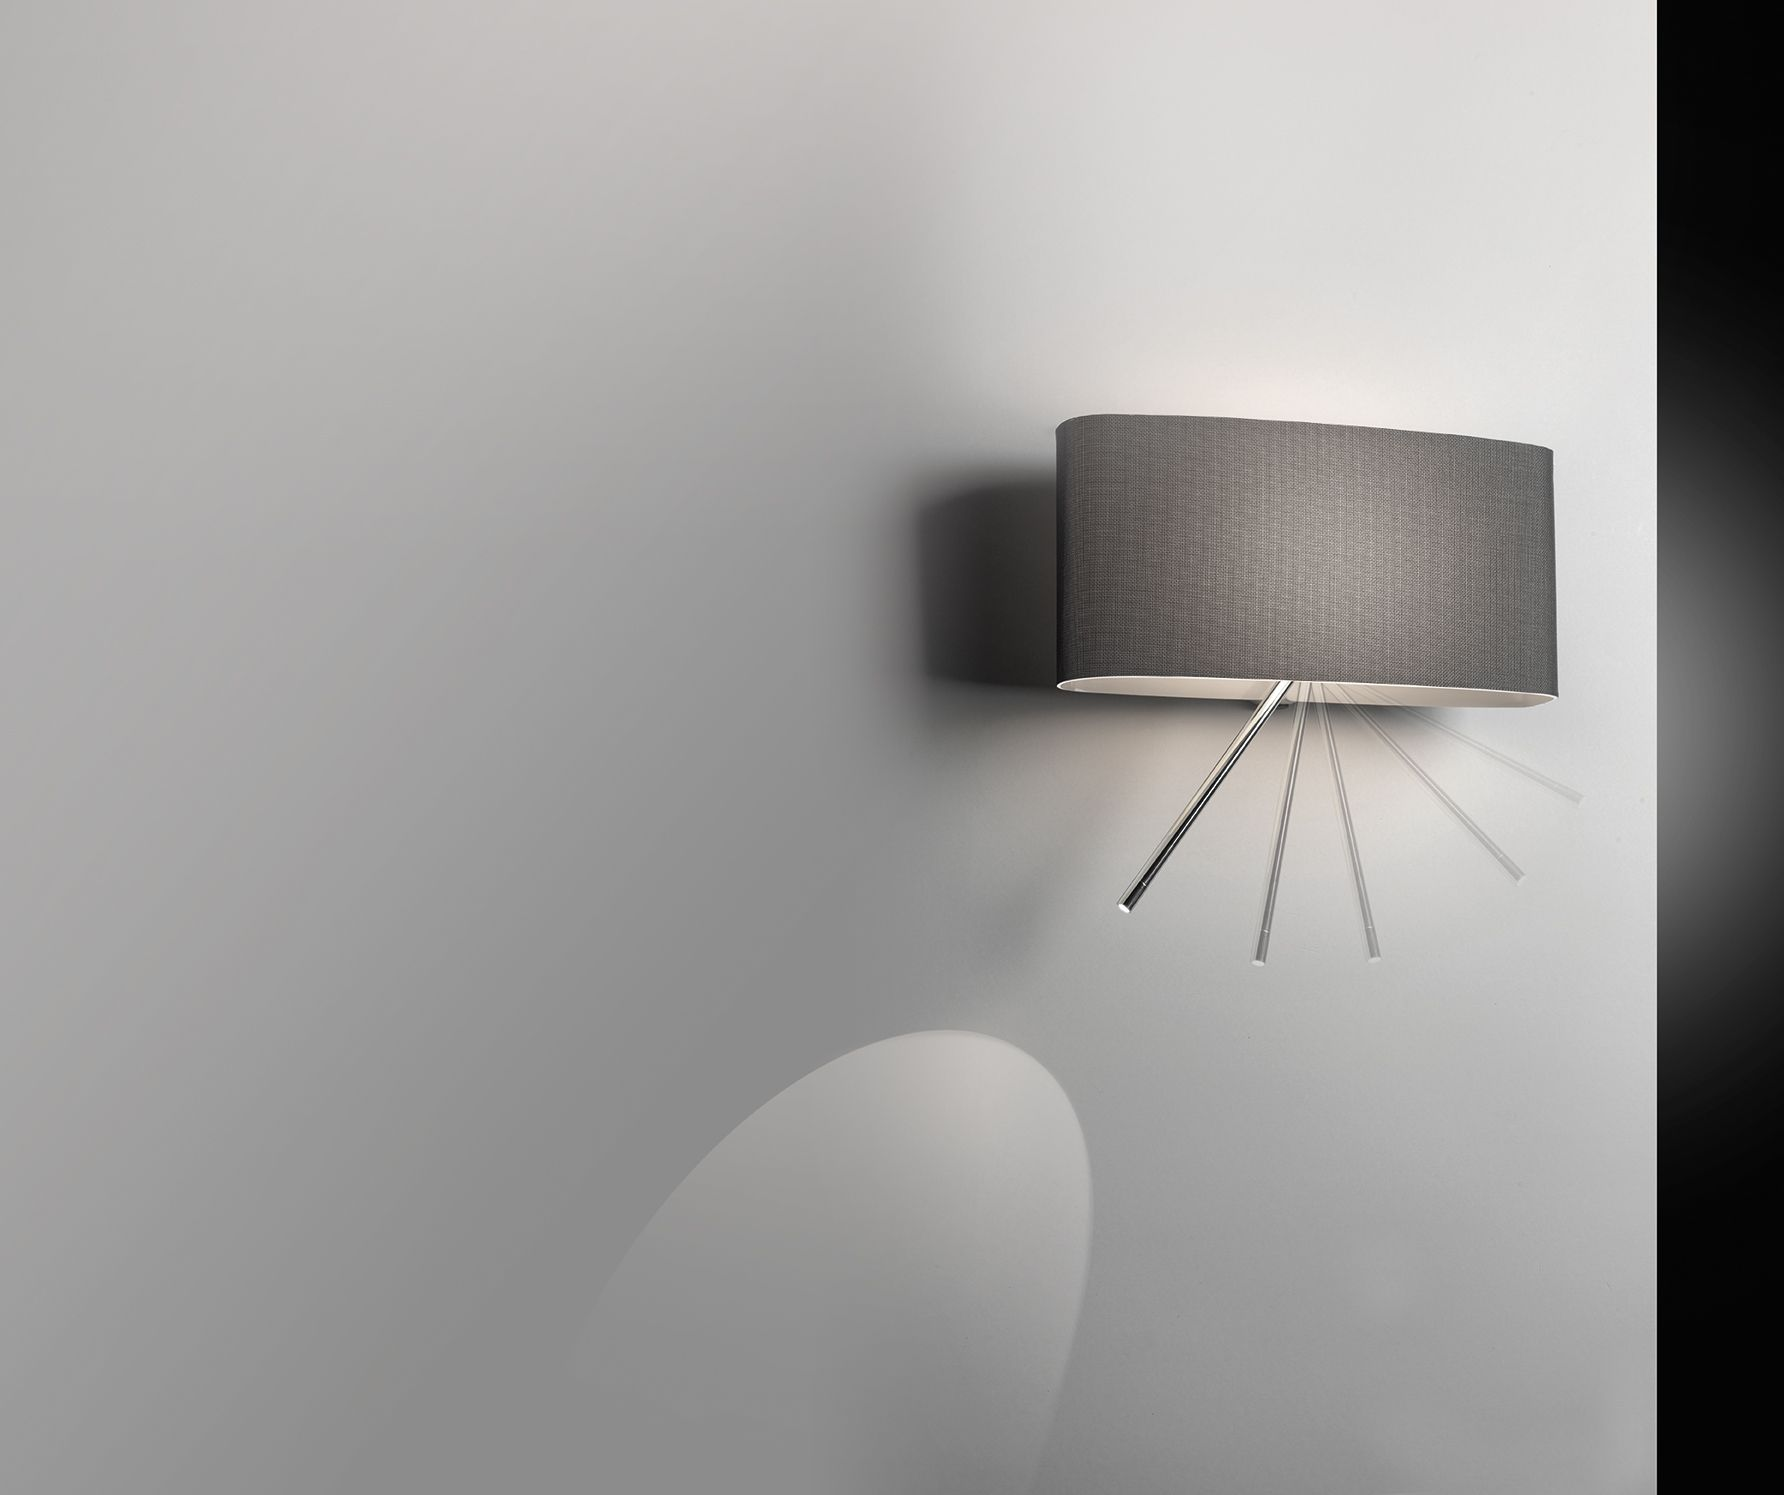 Pupilla Designer Mimo Mussapi Wall Lamps With Integrated